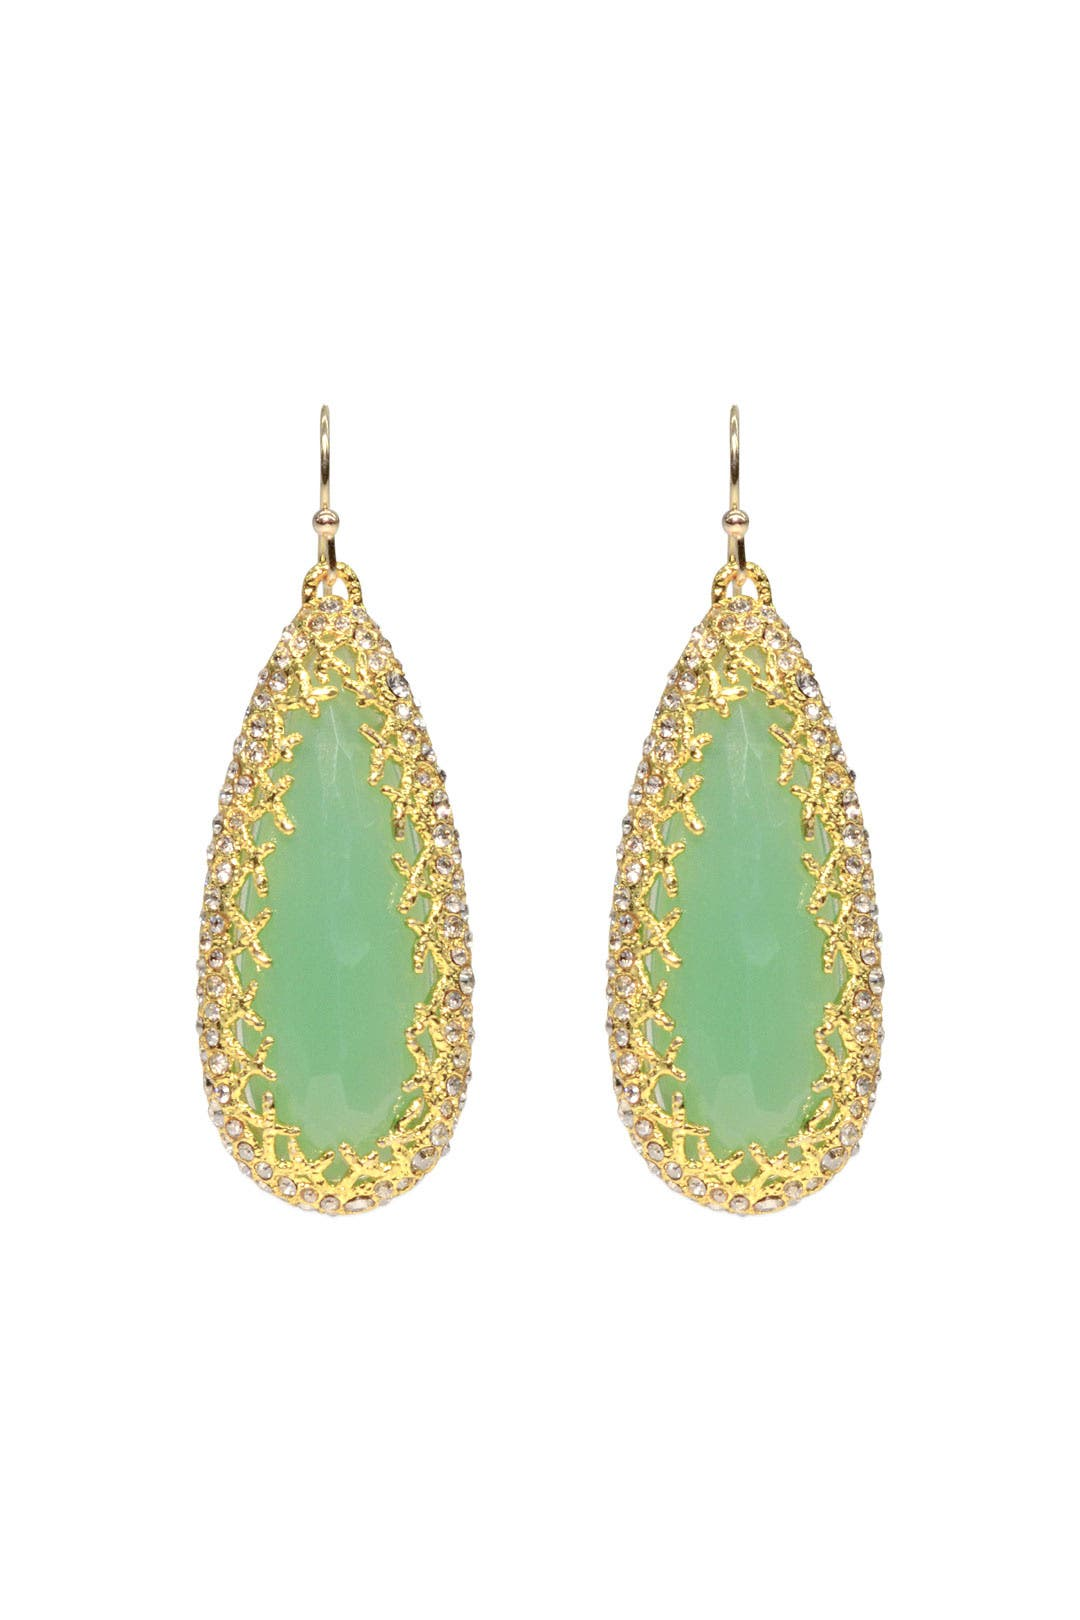 Seaglass Lattice Teardrops by Alexis Bittar